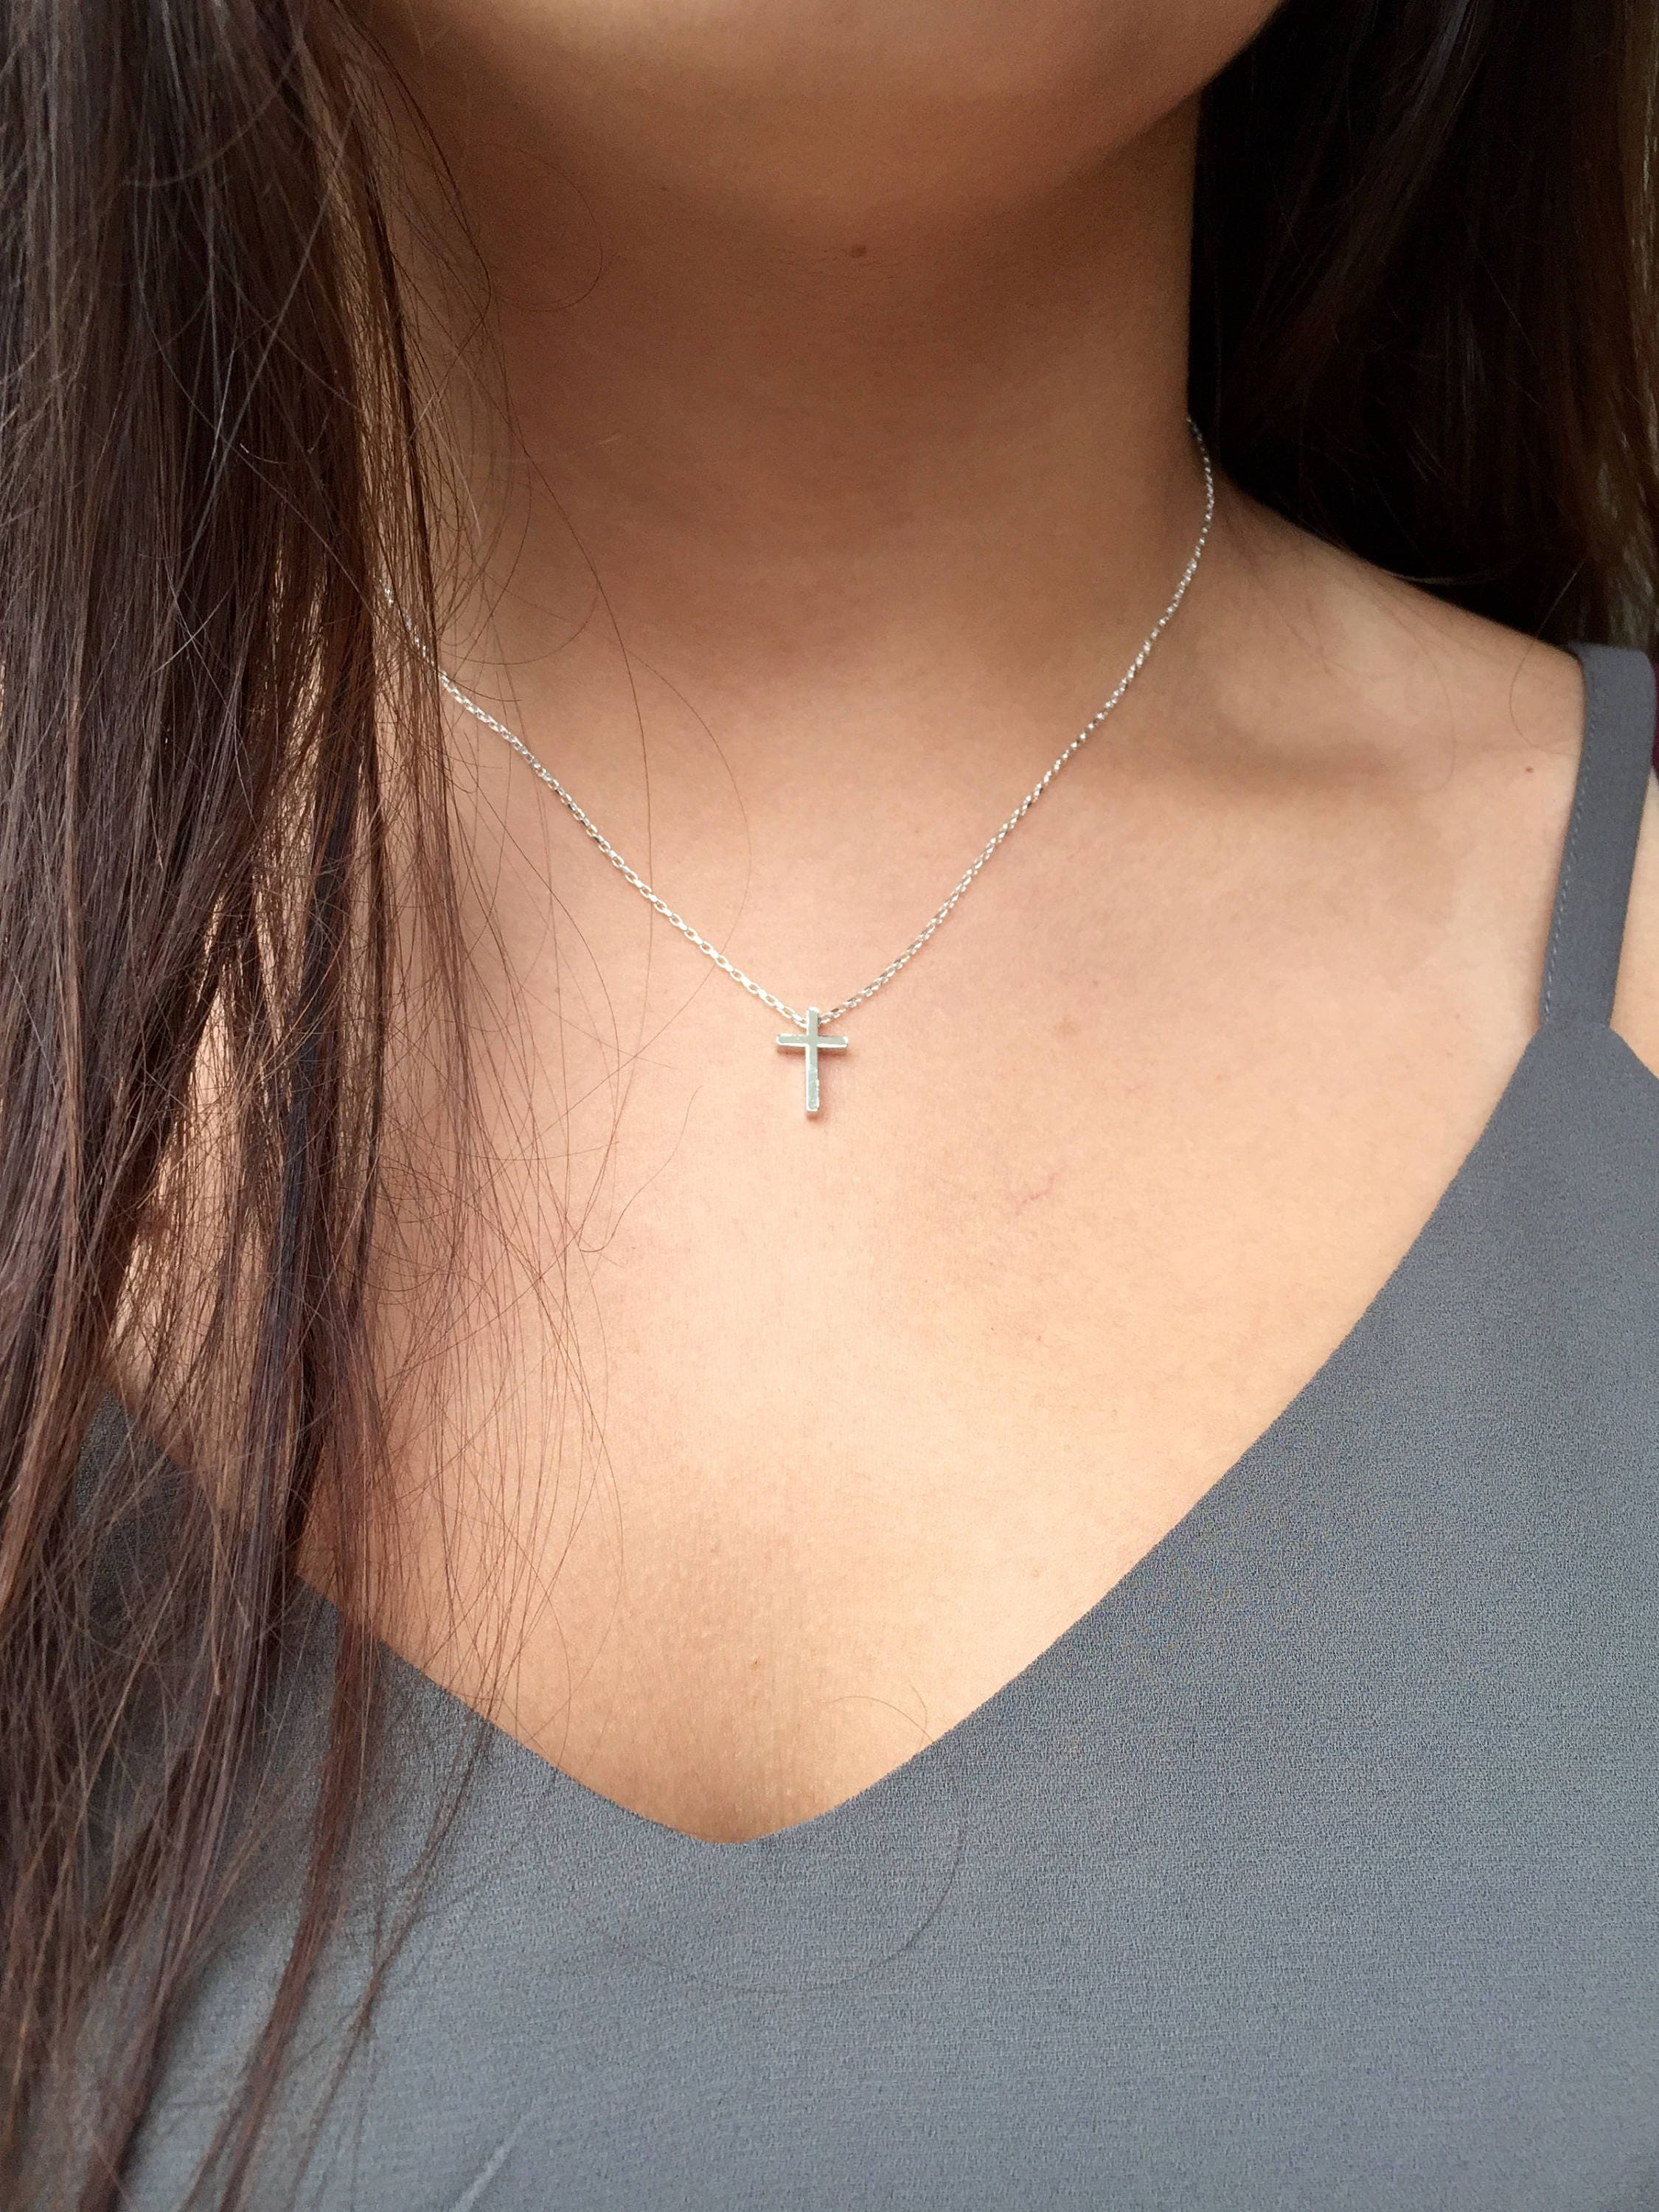 tiny silver tinybee bee necklace